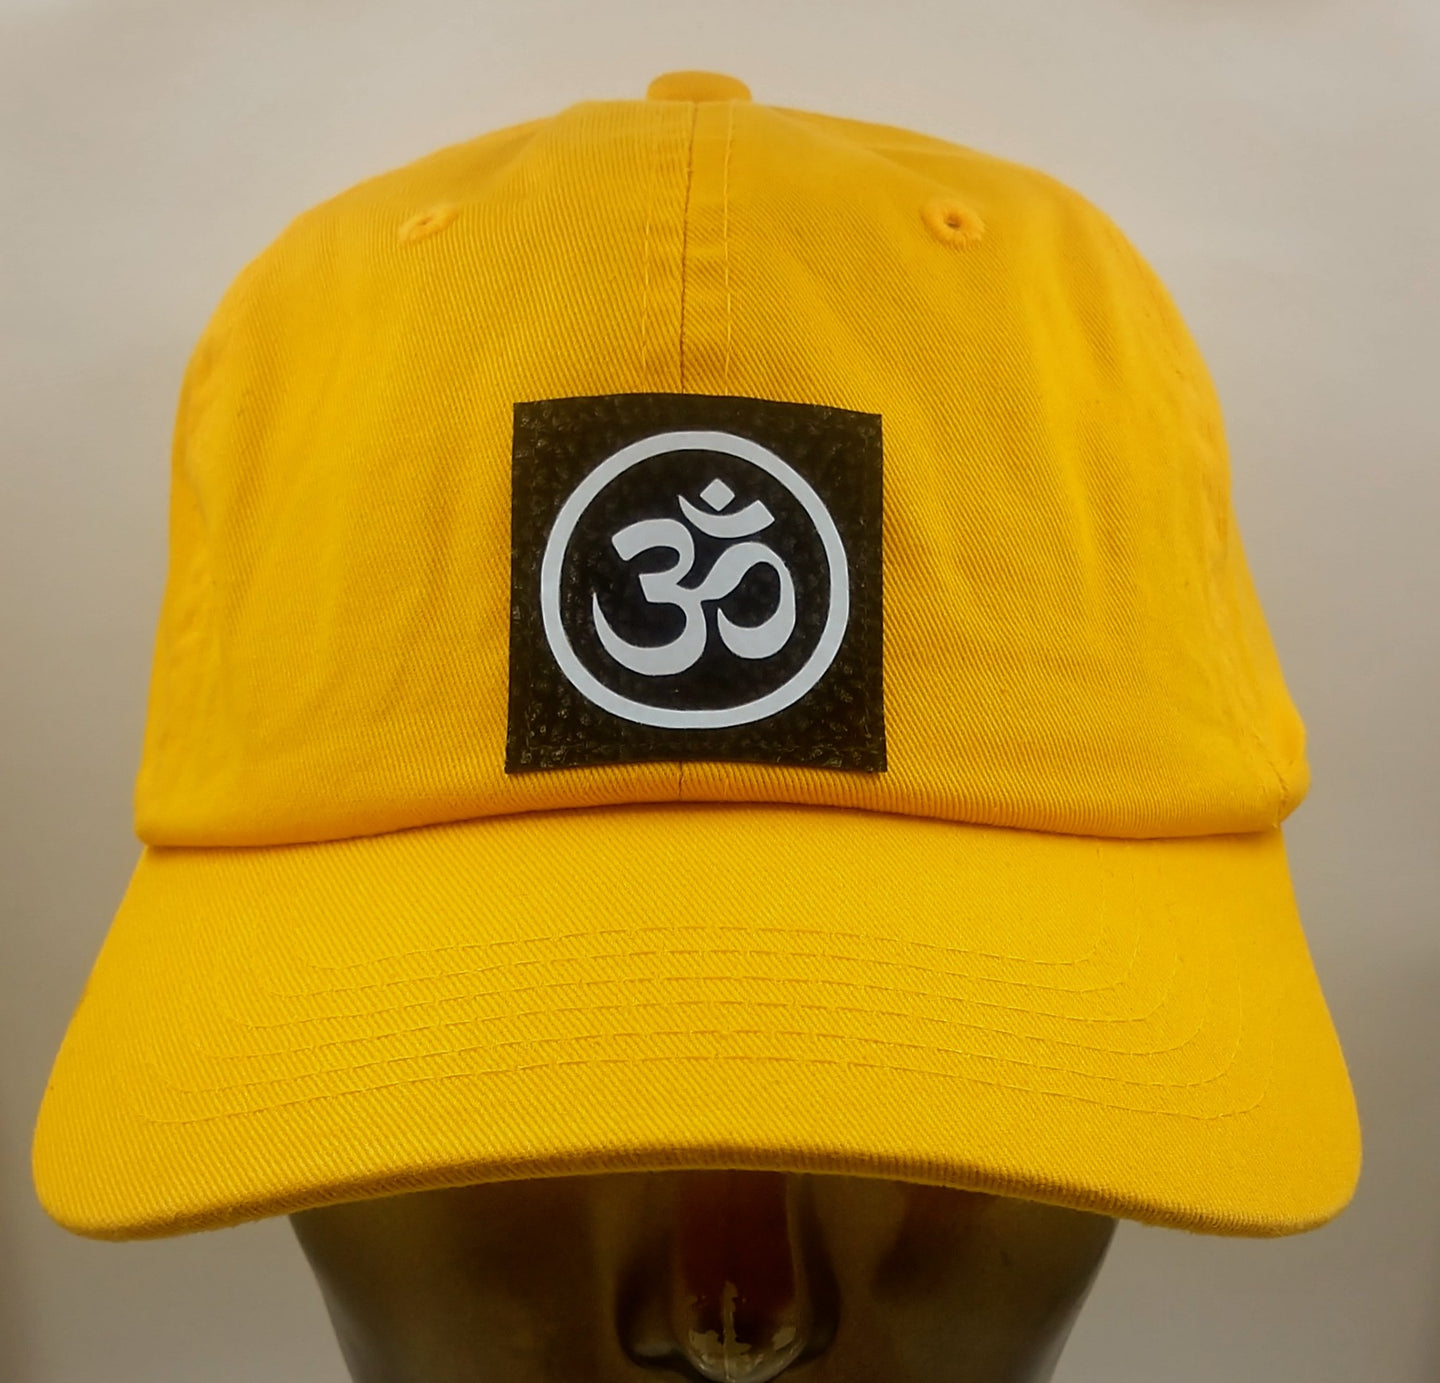 Buddha gear Buddha lids Mustard dad hat with hand made ohm symbol  Ohm is a sacred sound and a sacred spiritual symbol in Hinduism, that signifies the essence of the ultimate reality, consciousness or Atman (soul). Some believe it is the sound of creation.